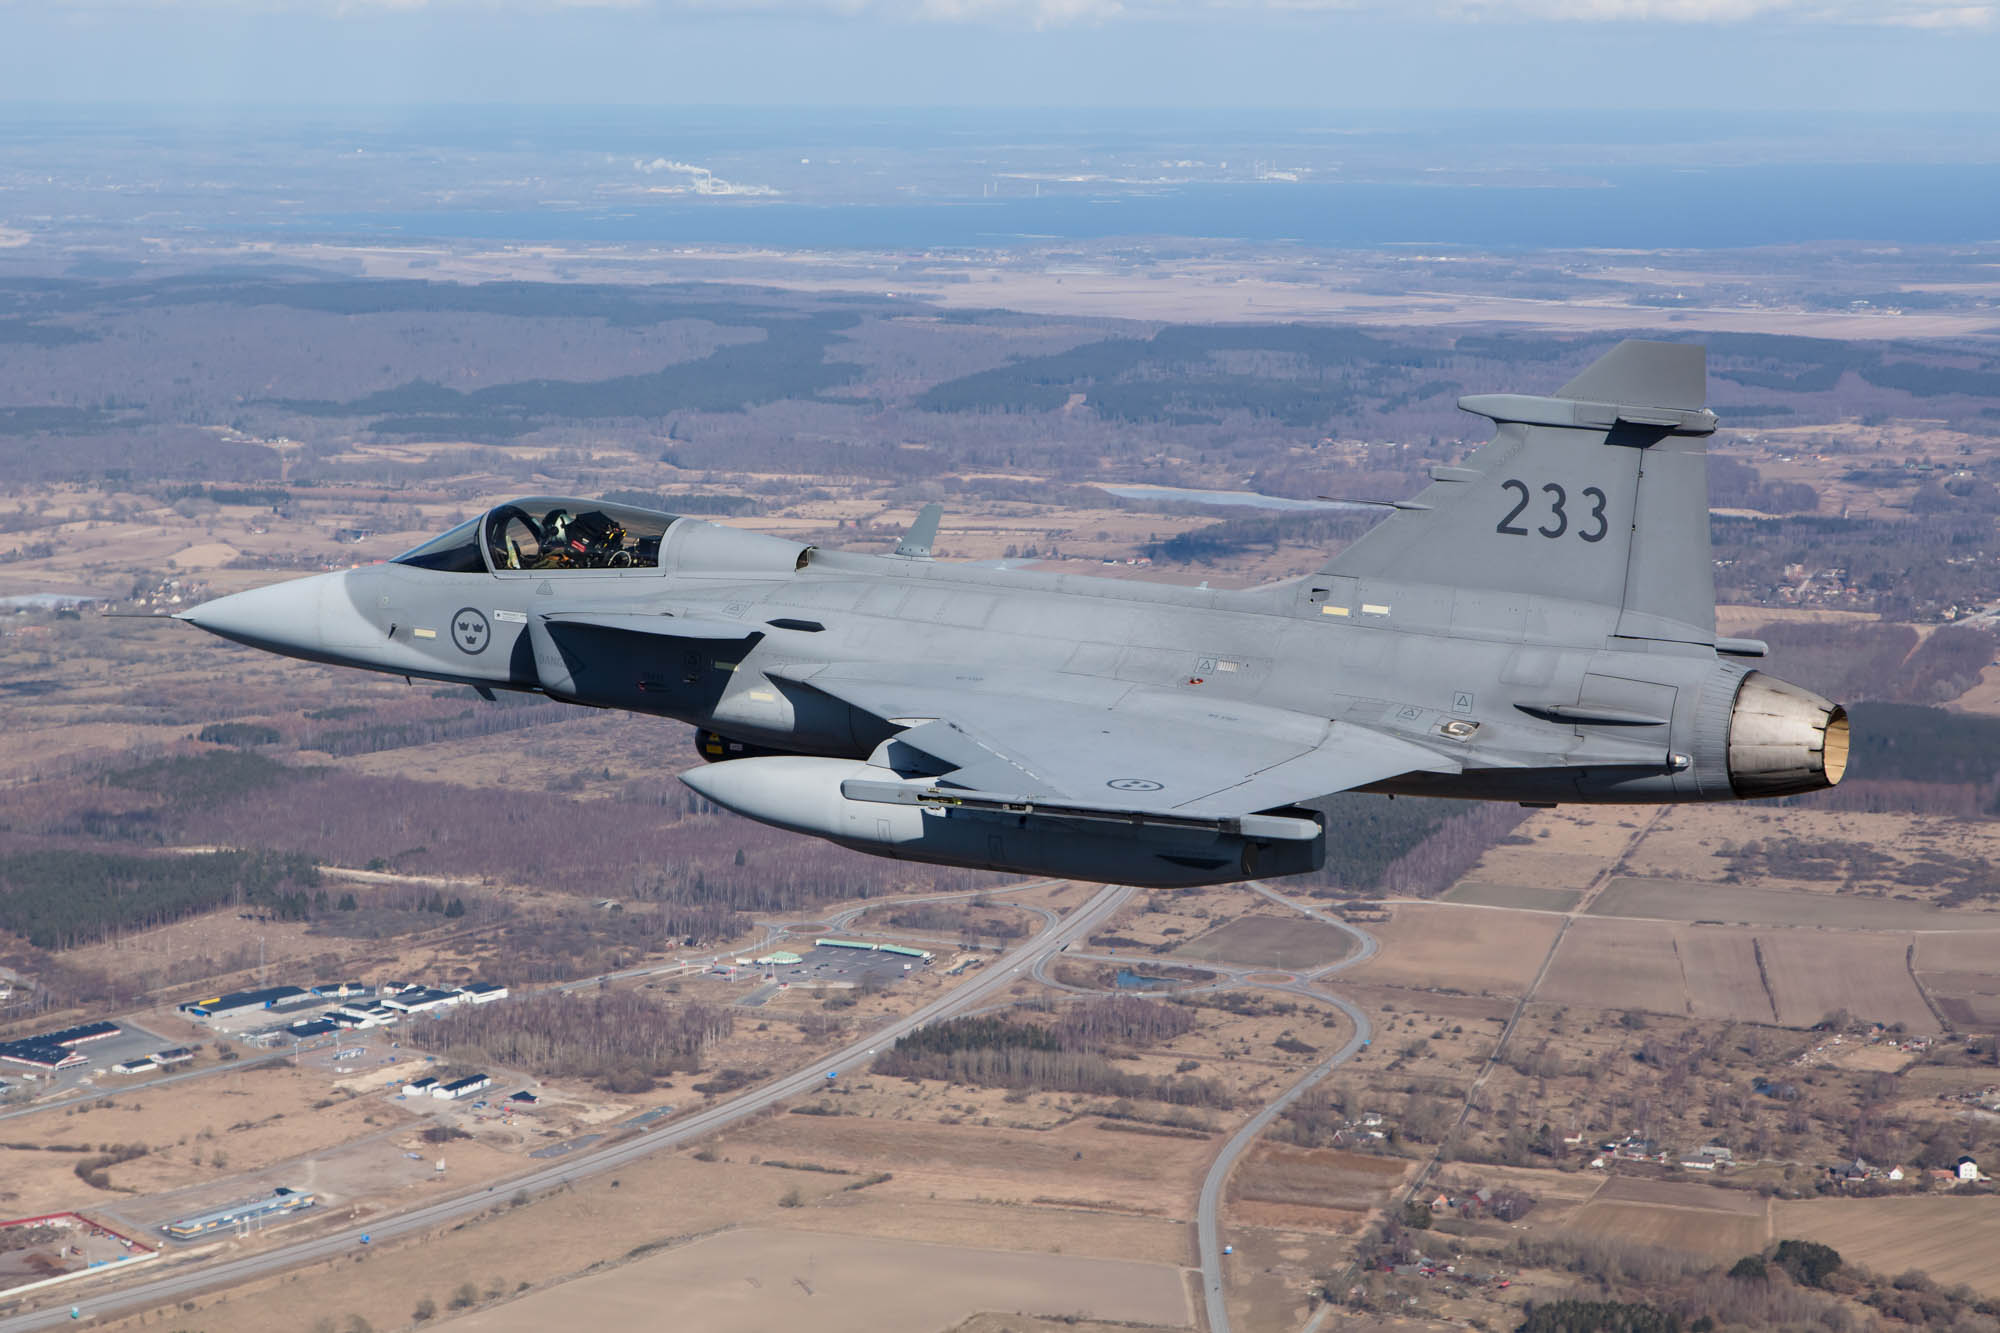 Swedish Air Force (Flygvapnet), Gripen air to air